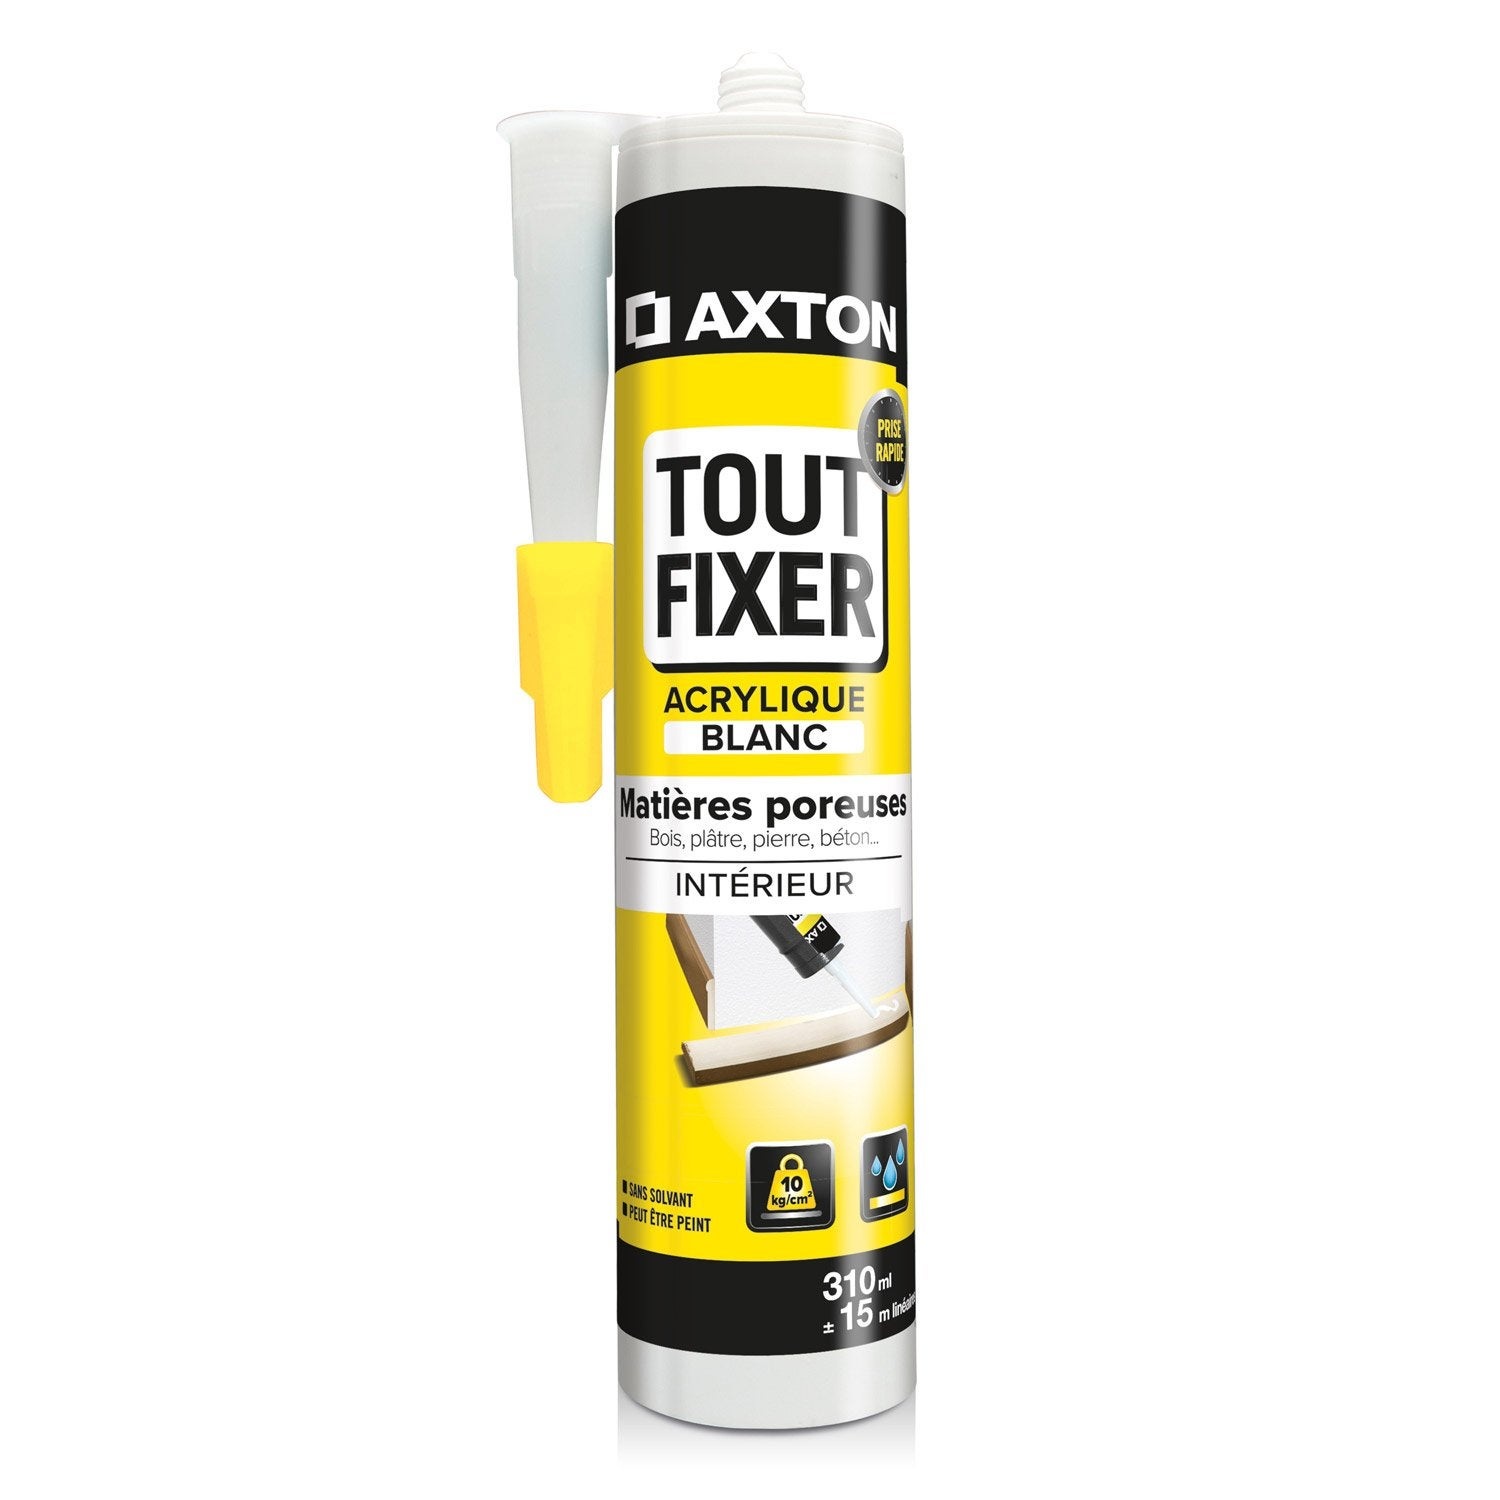 colle mastic tout fixer au mur blanche axton 310 ml leroy merlin. Black Bedroom Furniture Sets. Home Design Ideas